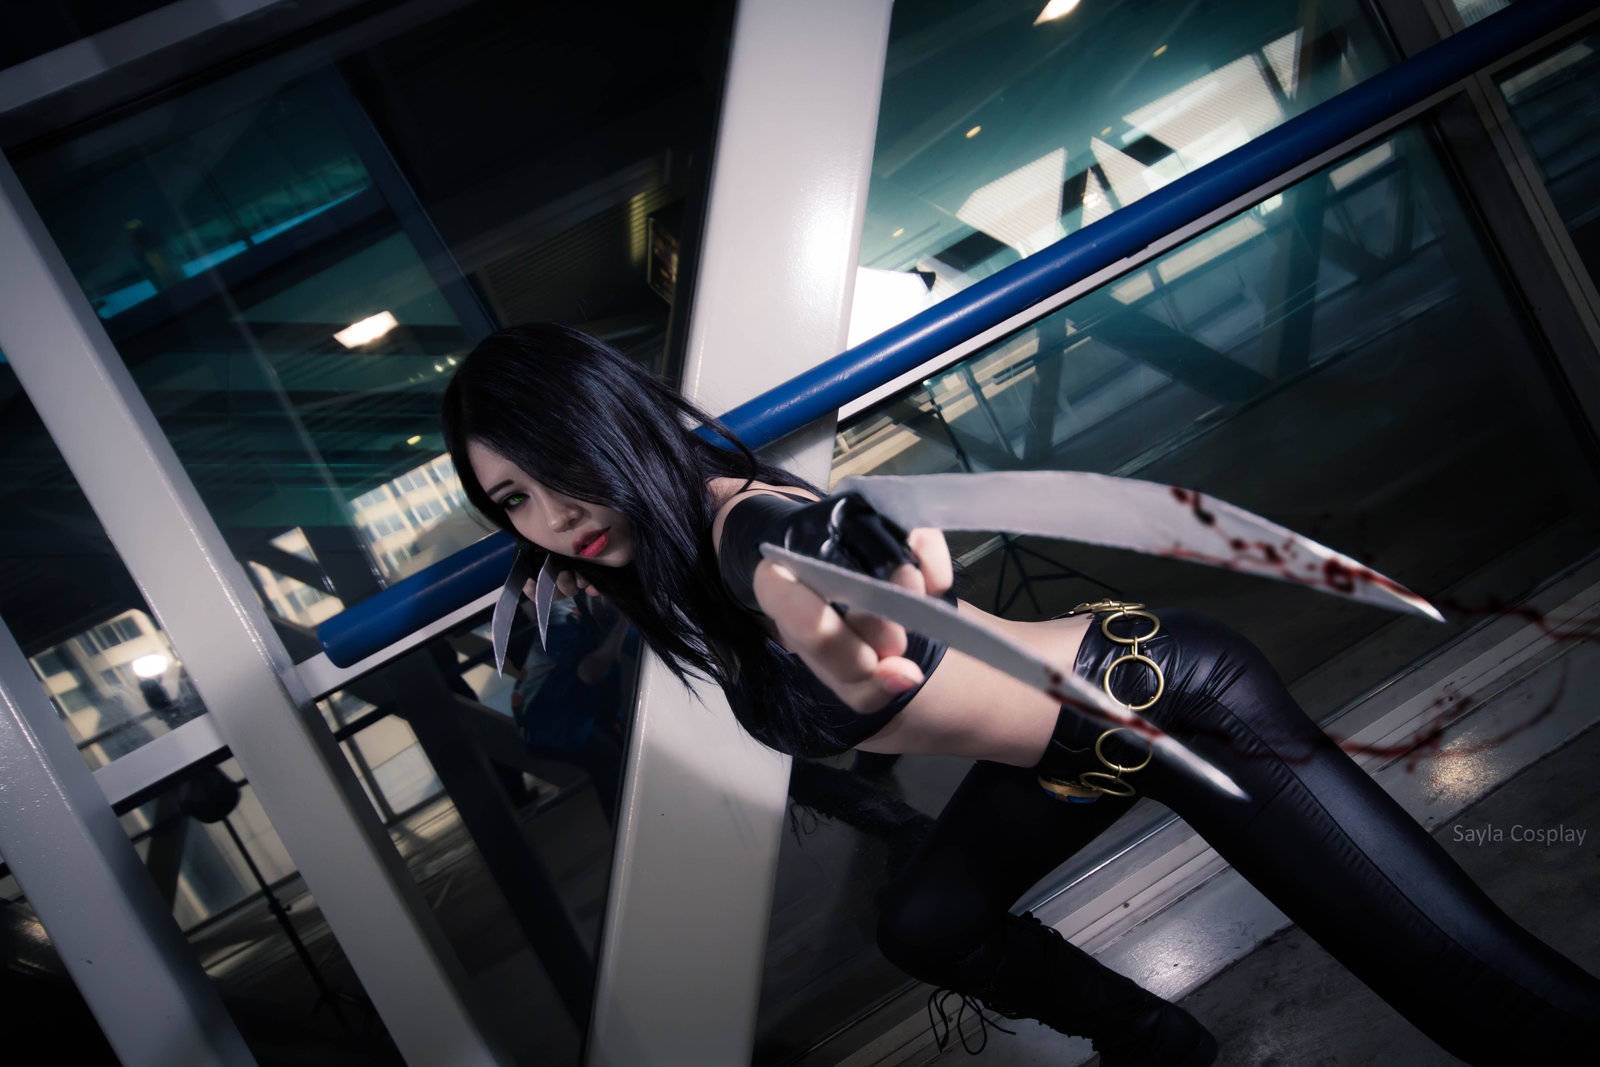 X-23-Sayla-Cosplay-RS-Cosplay-Photography-1